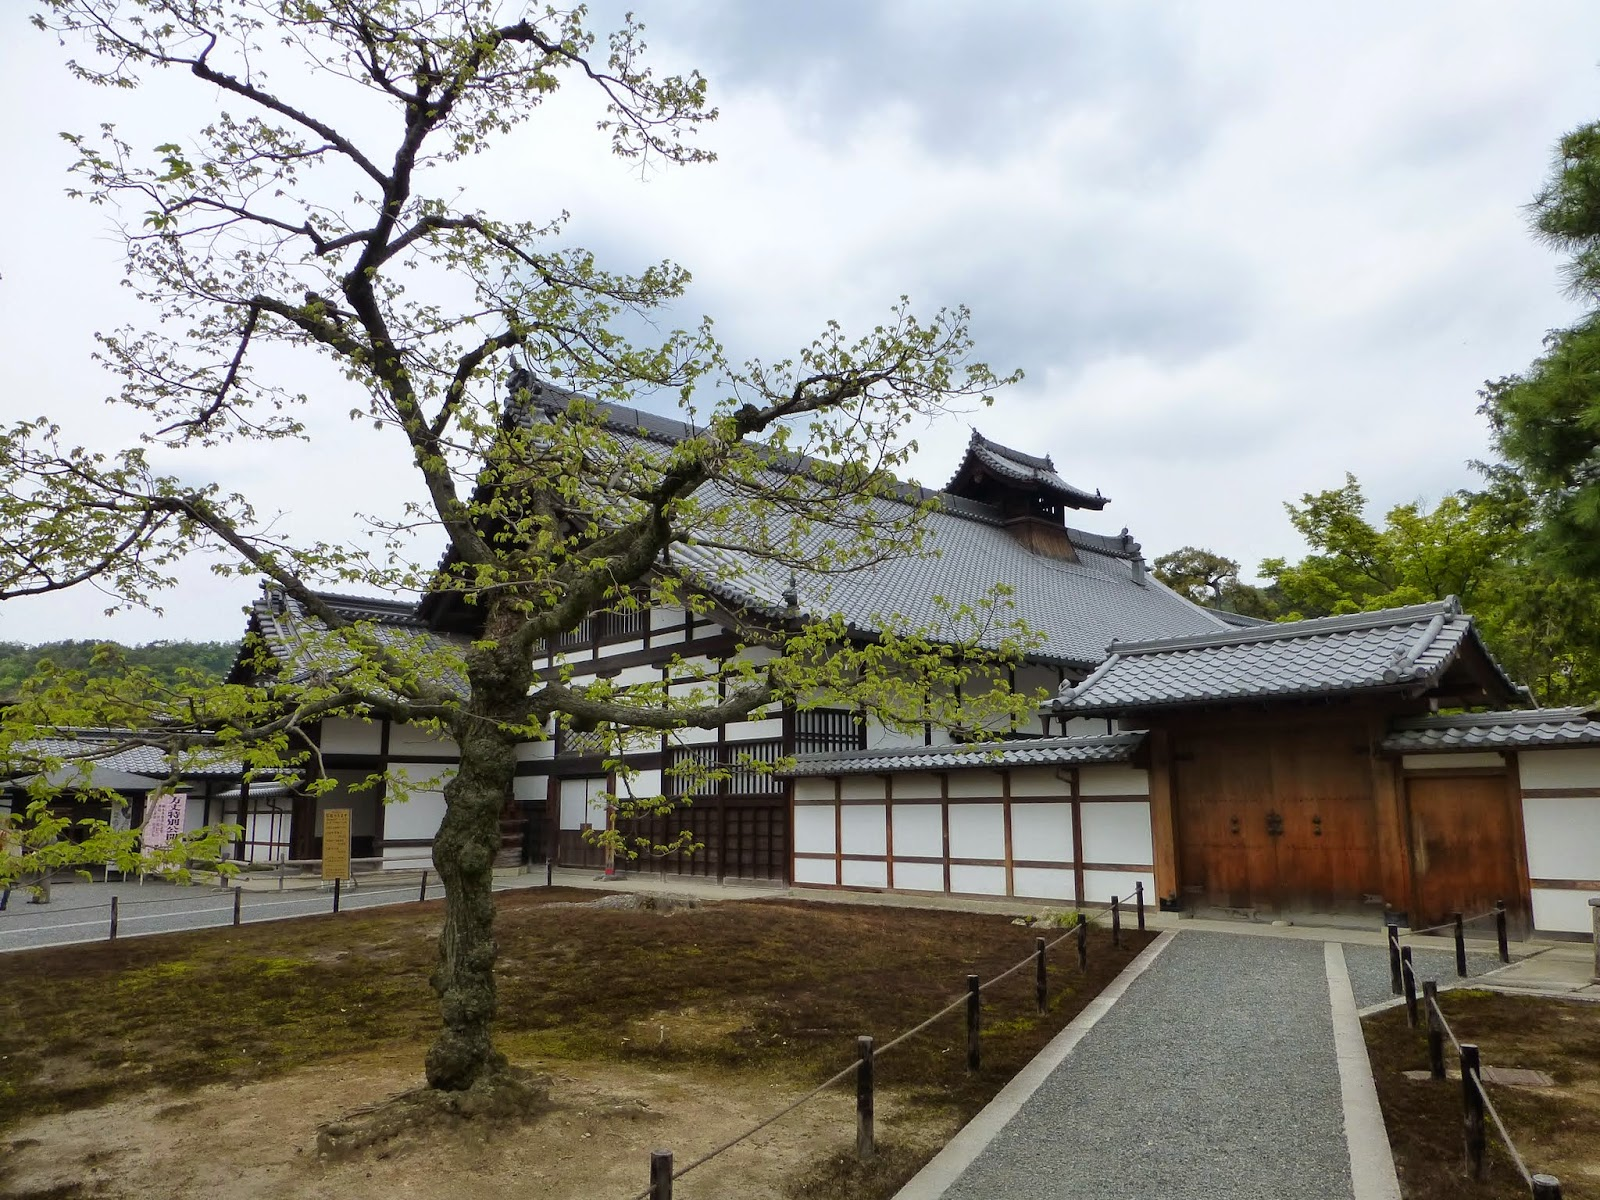 Related Keywords & Suggestions for kyoto kinkakuji temple plan